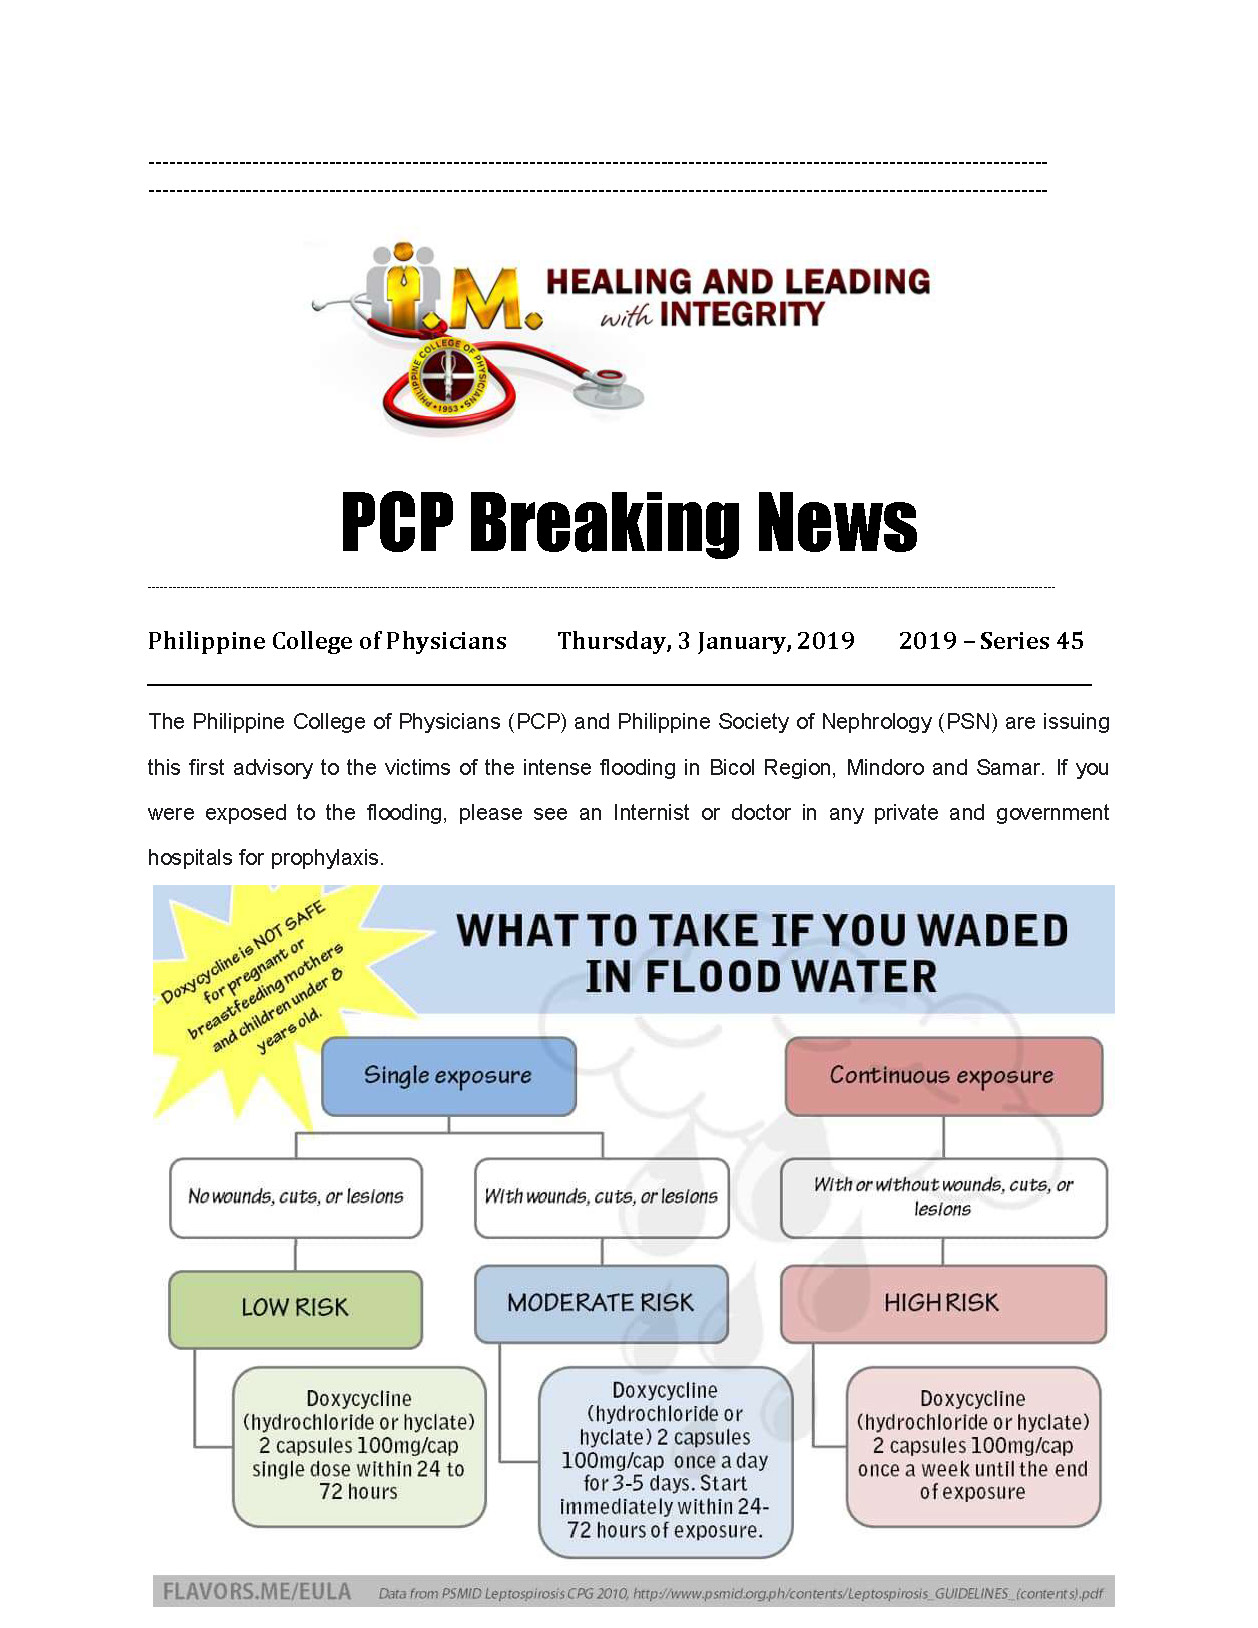 45th PCP Breaking News Leptospirosis PCP PSN